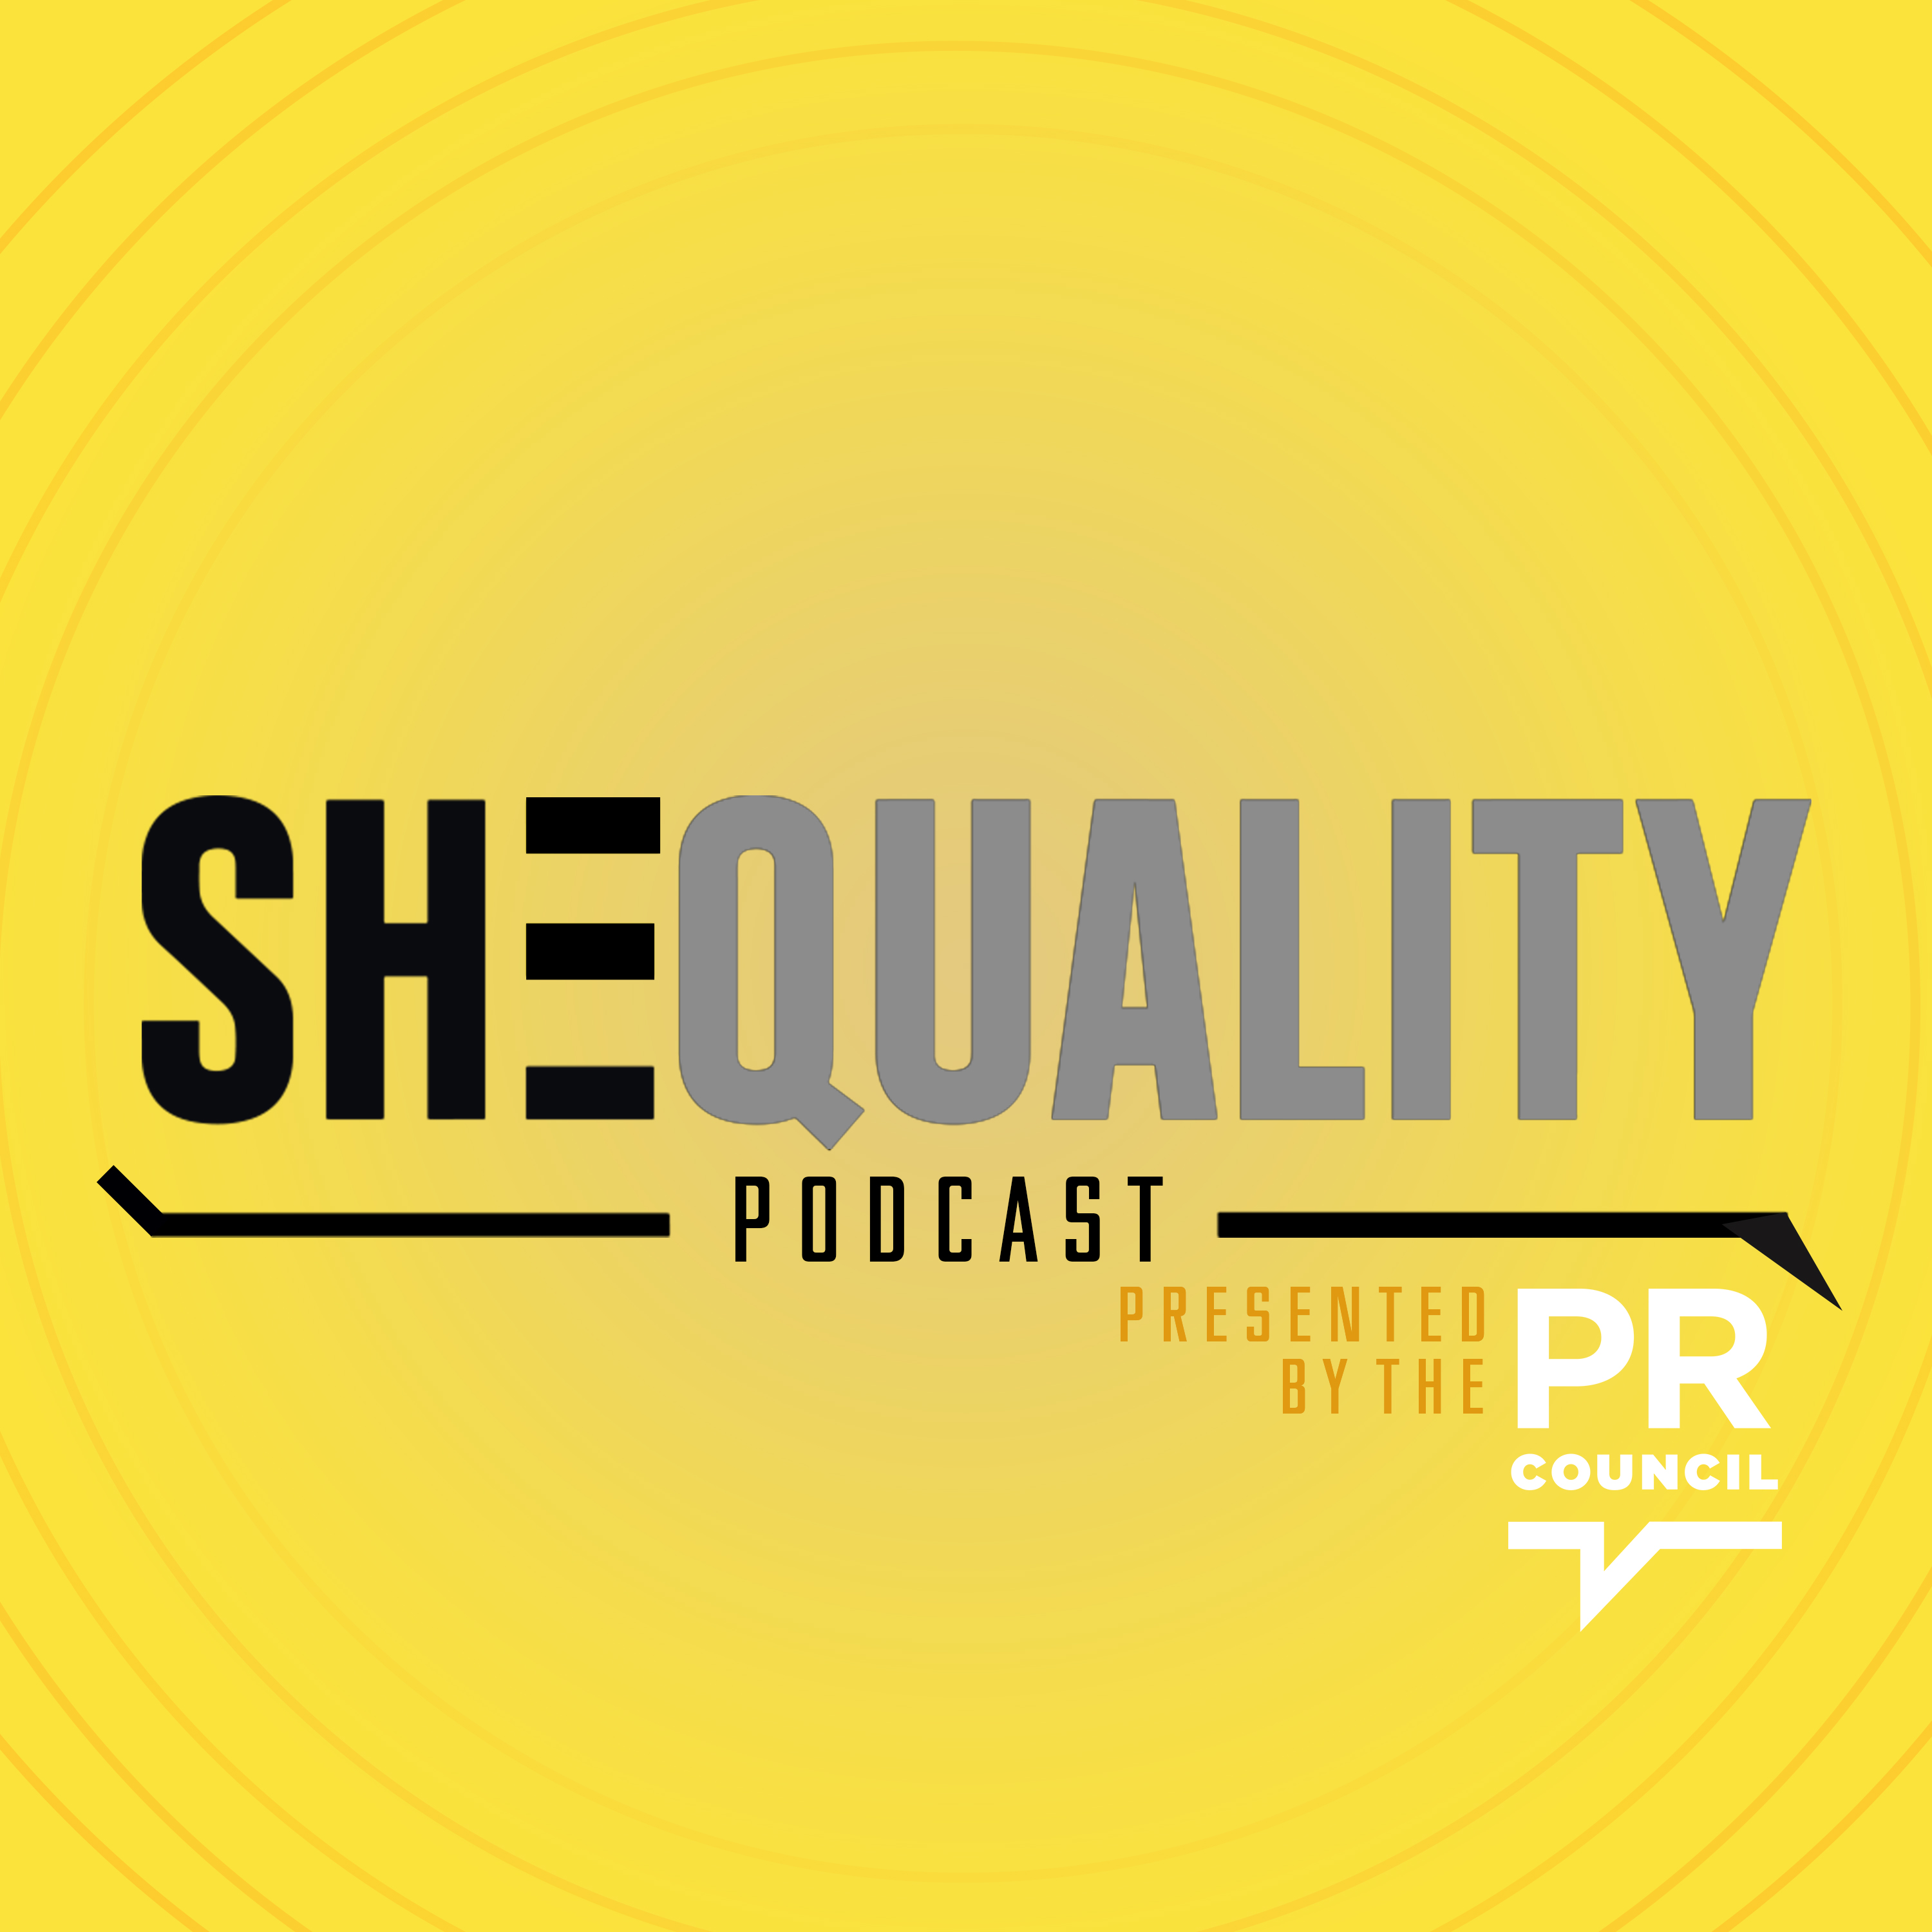 SHEQUALITY Podcast show art